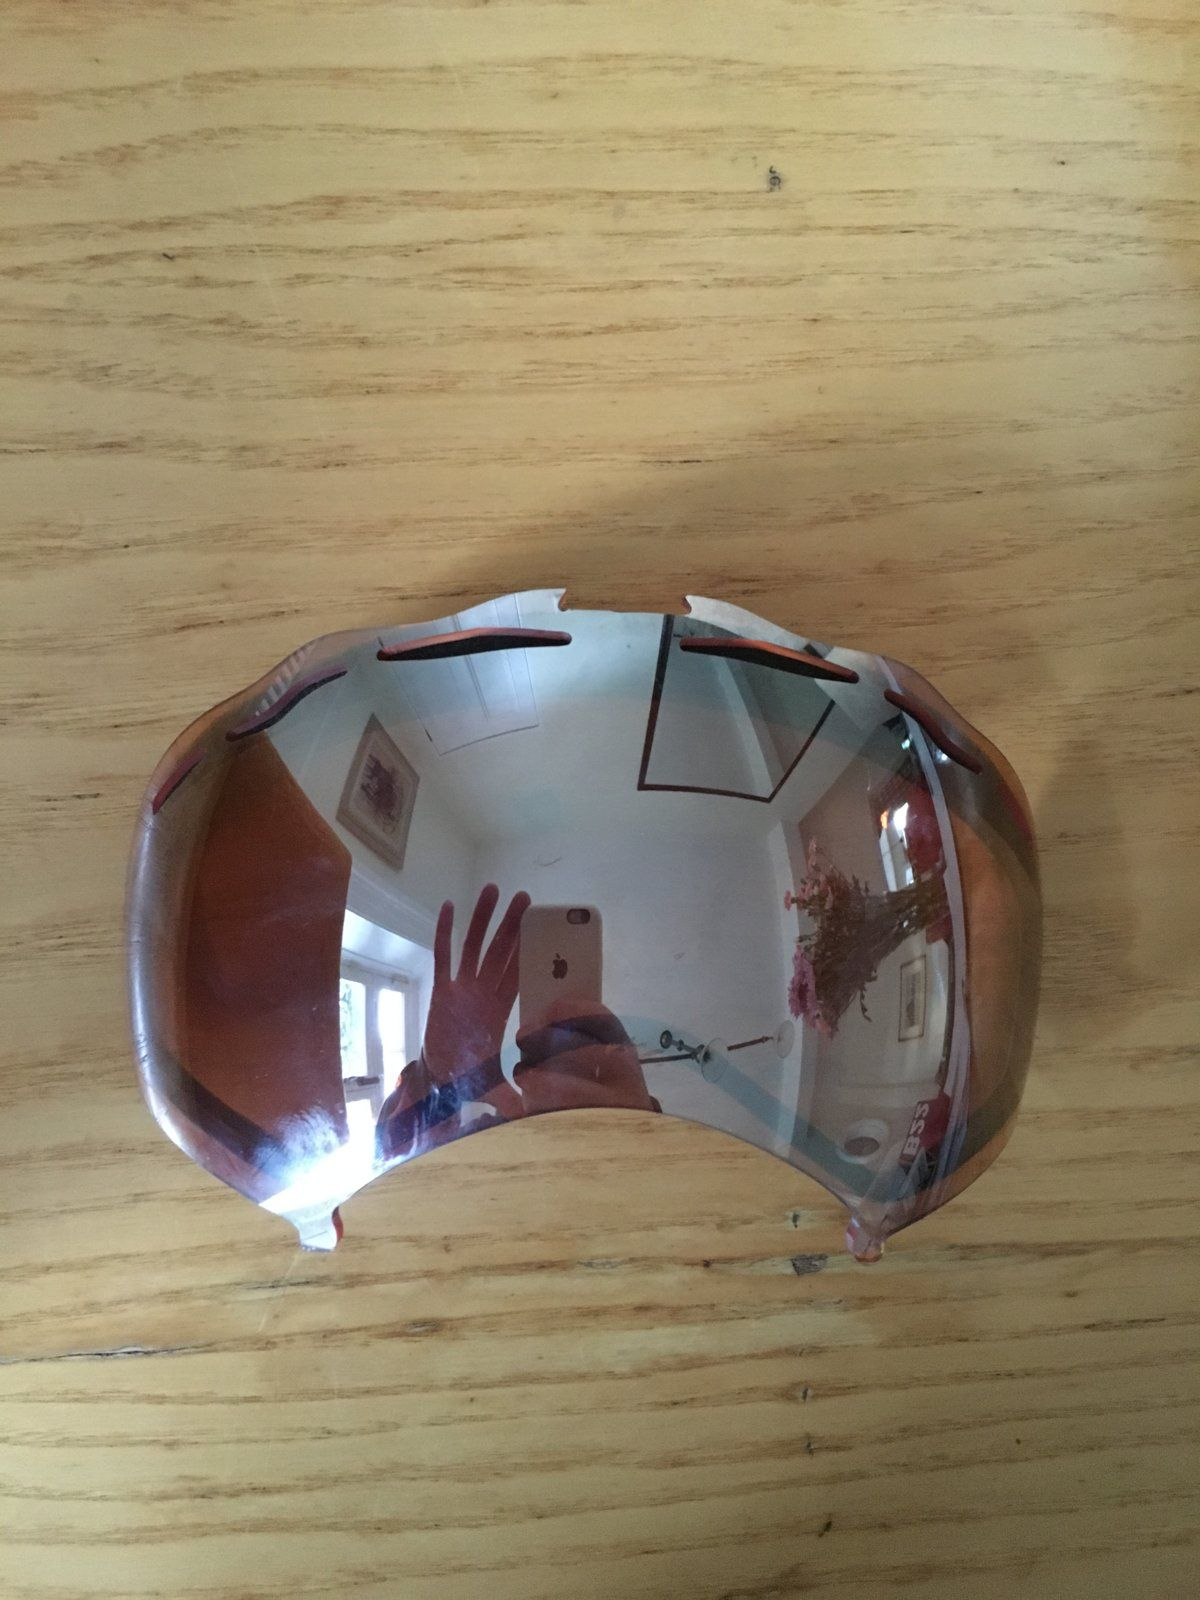 Can you identify these goggles? - IMG_5014.JPG